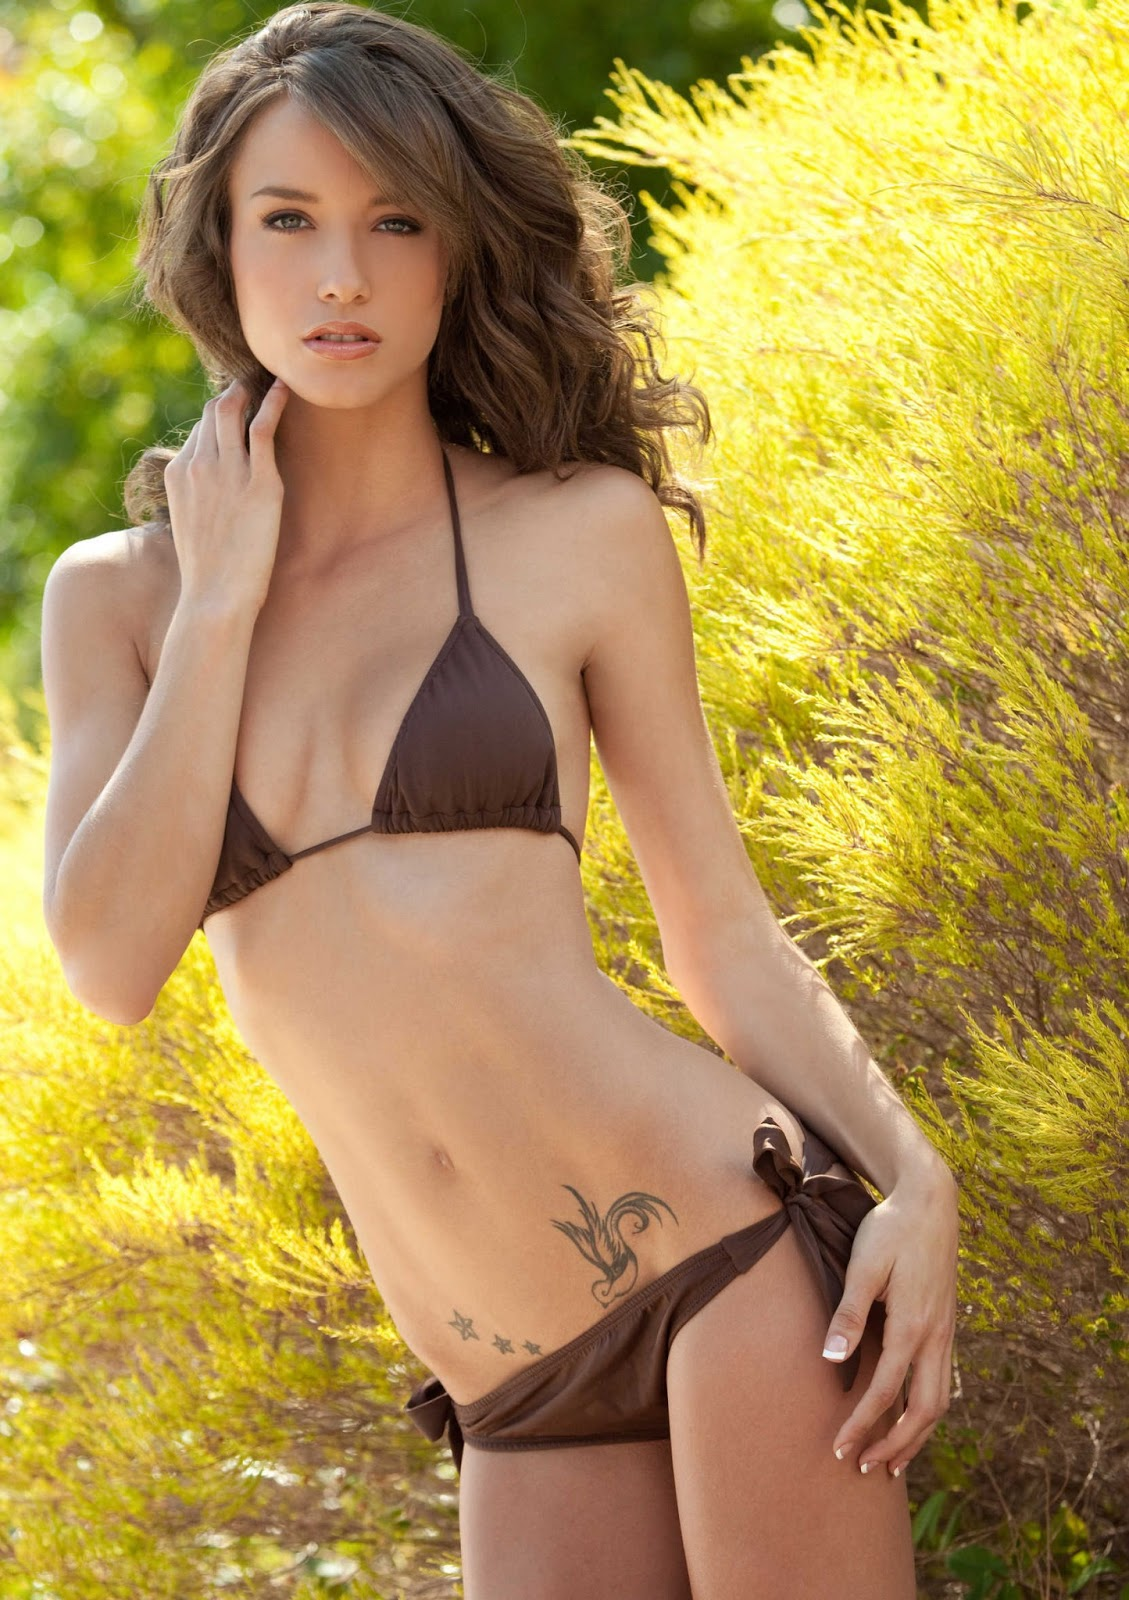 single chat rooms online free Lincoln